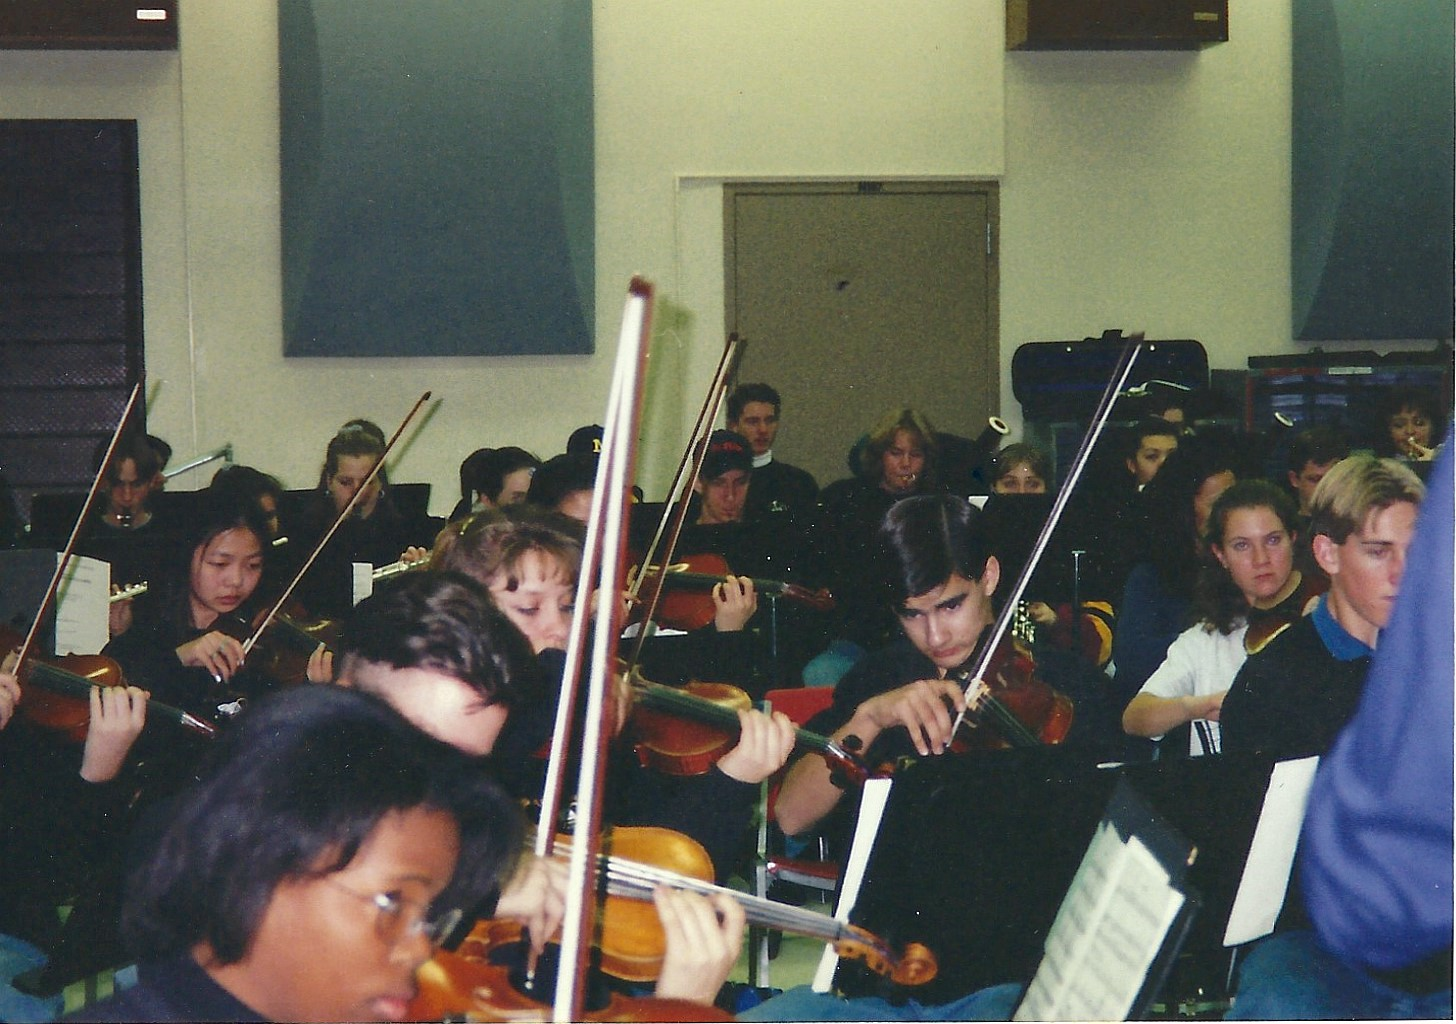 Flagstaff 1997_In rehearsal